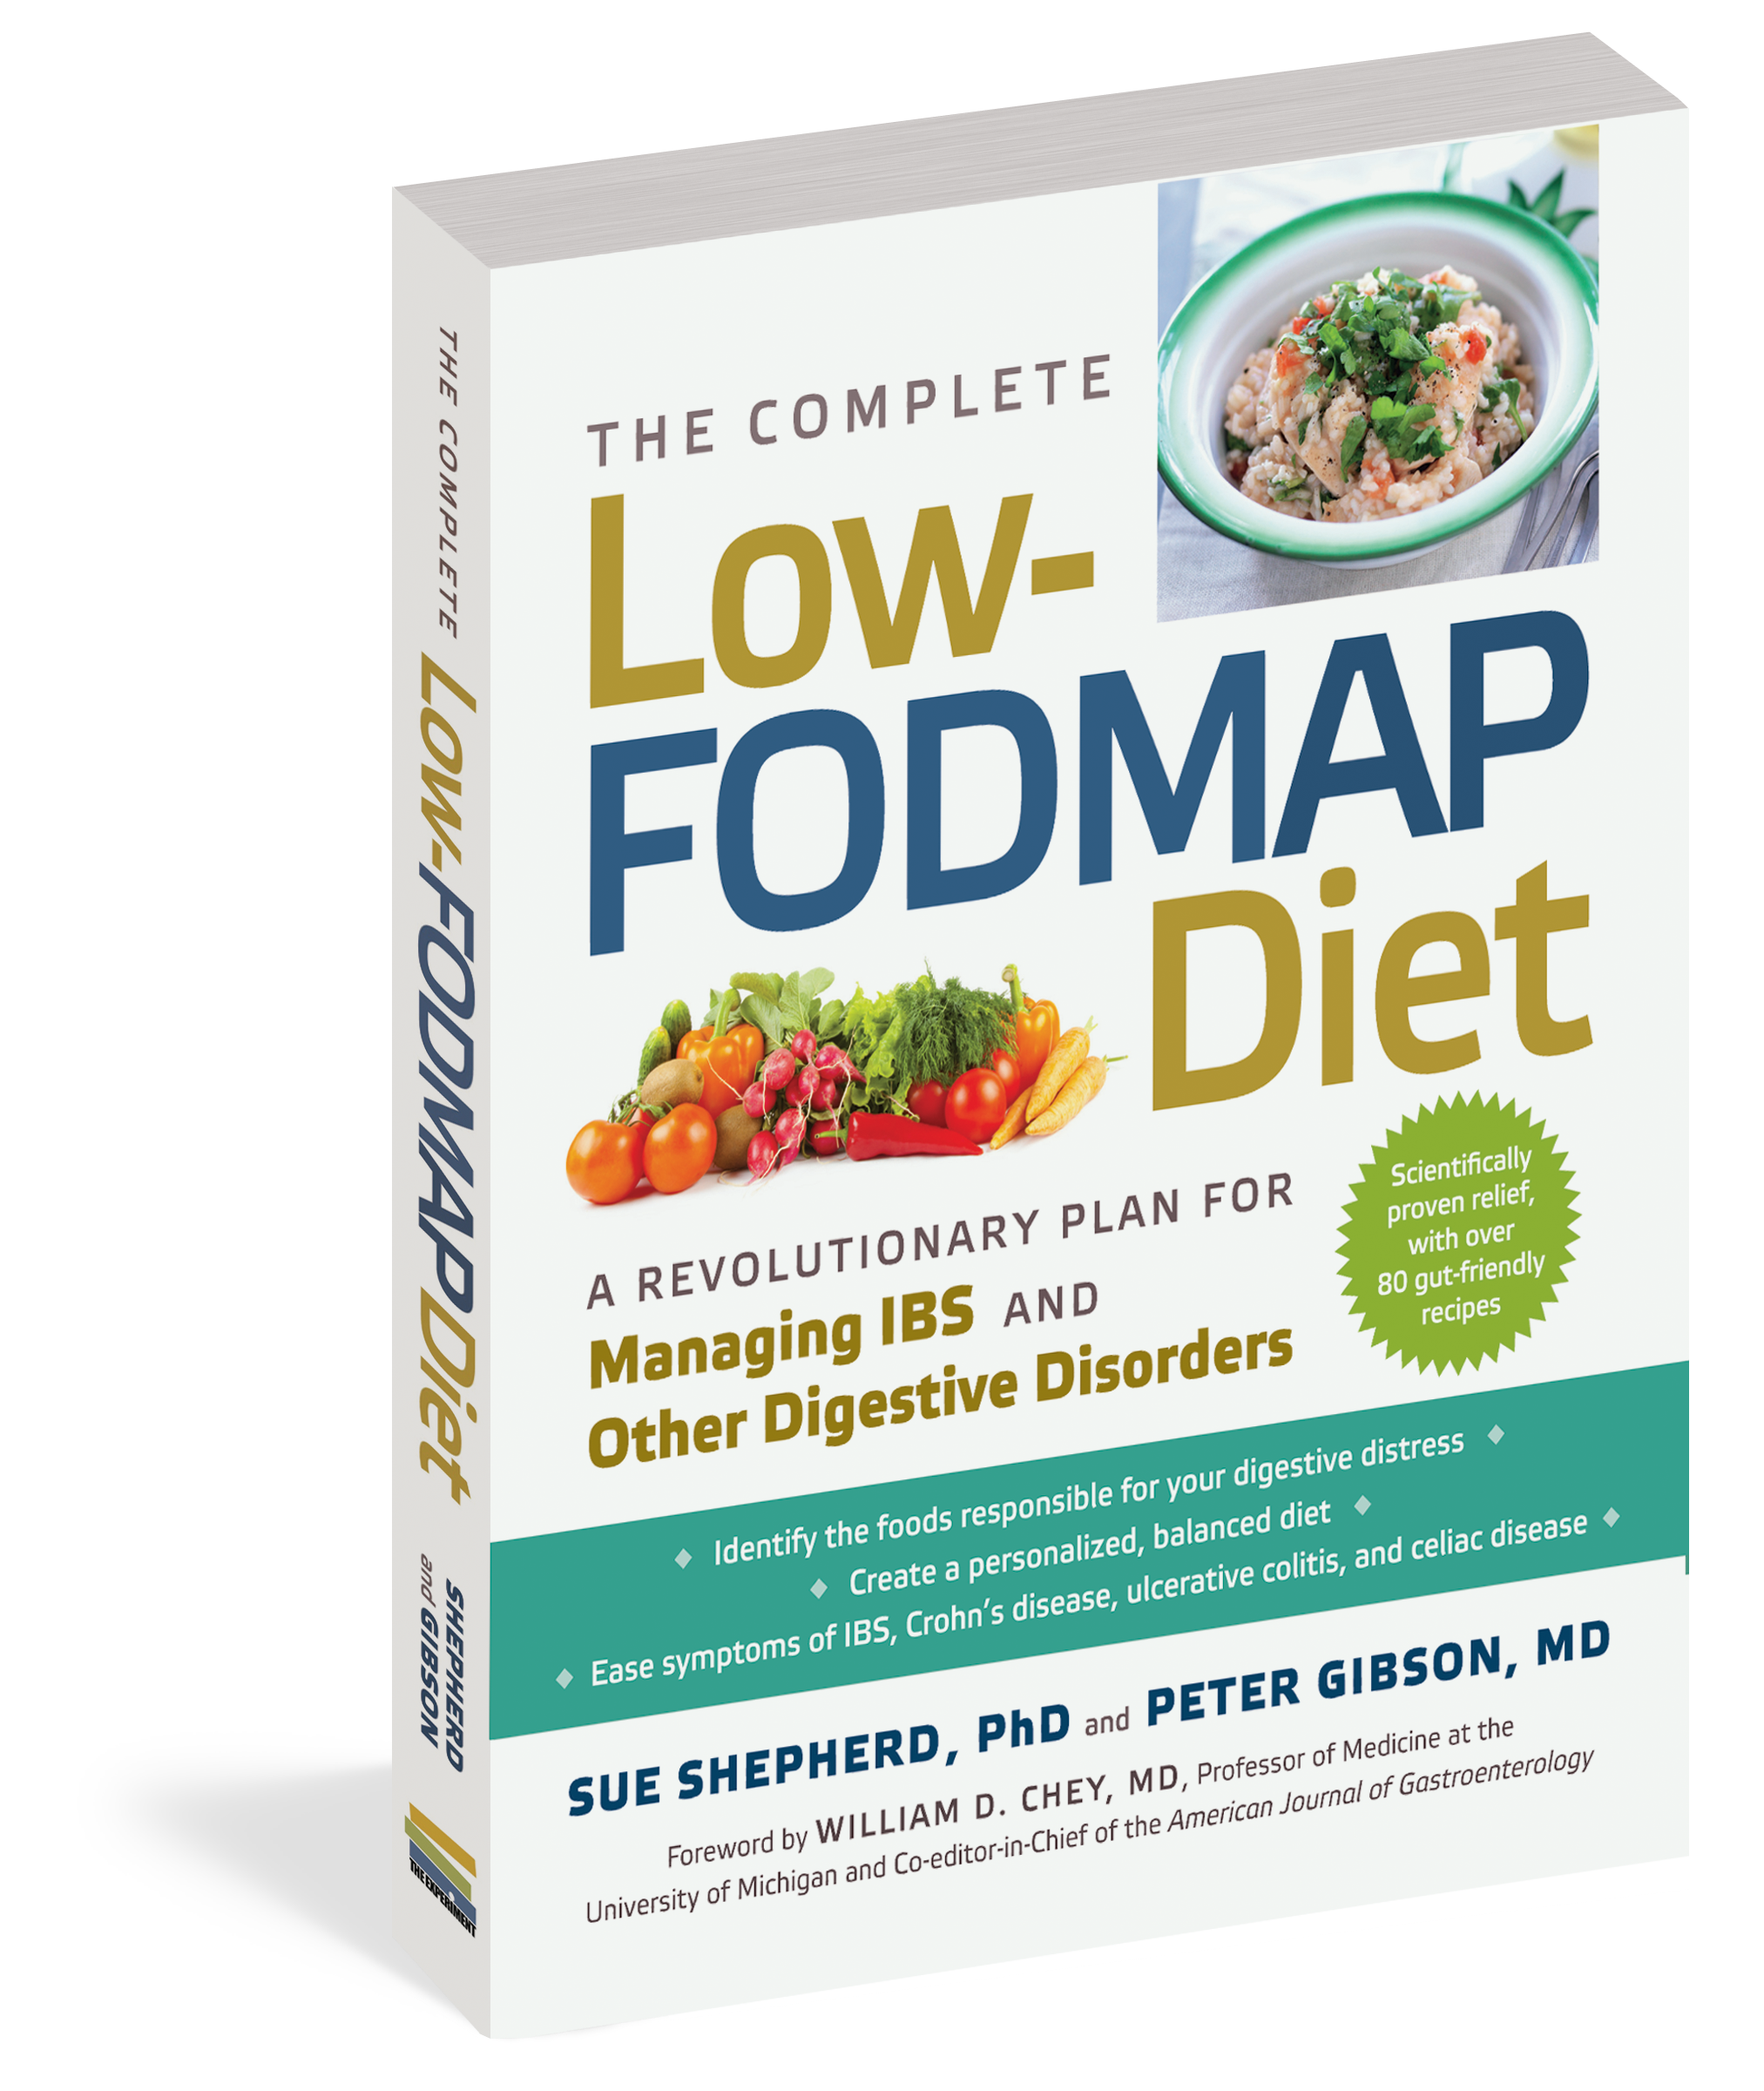 The Complete Low-FODMAP Diet - Workman Publishing